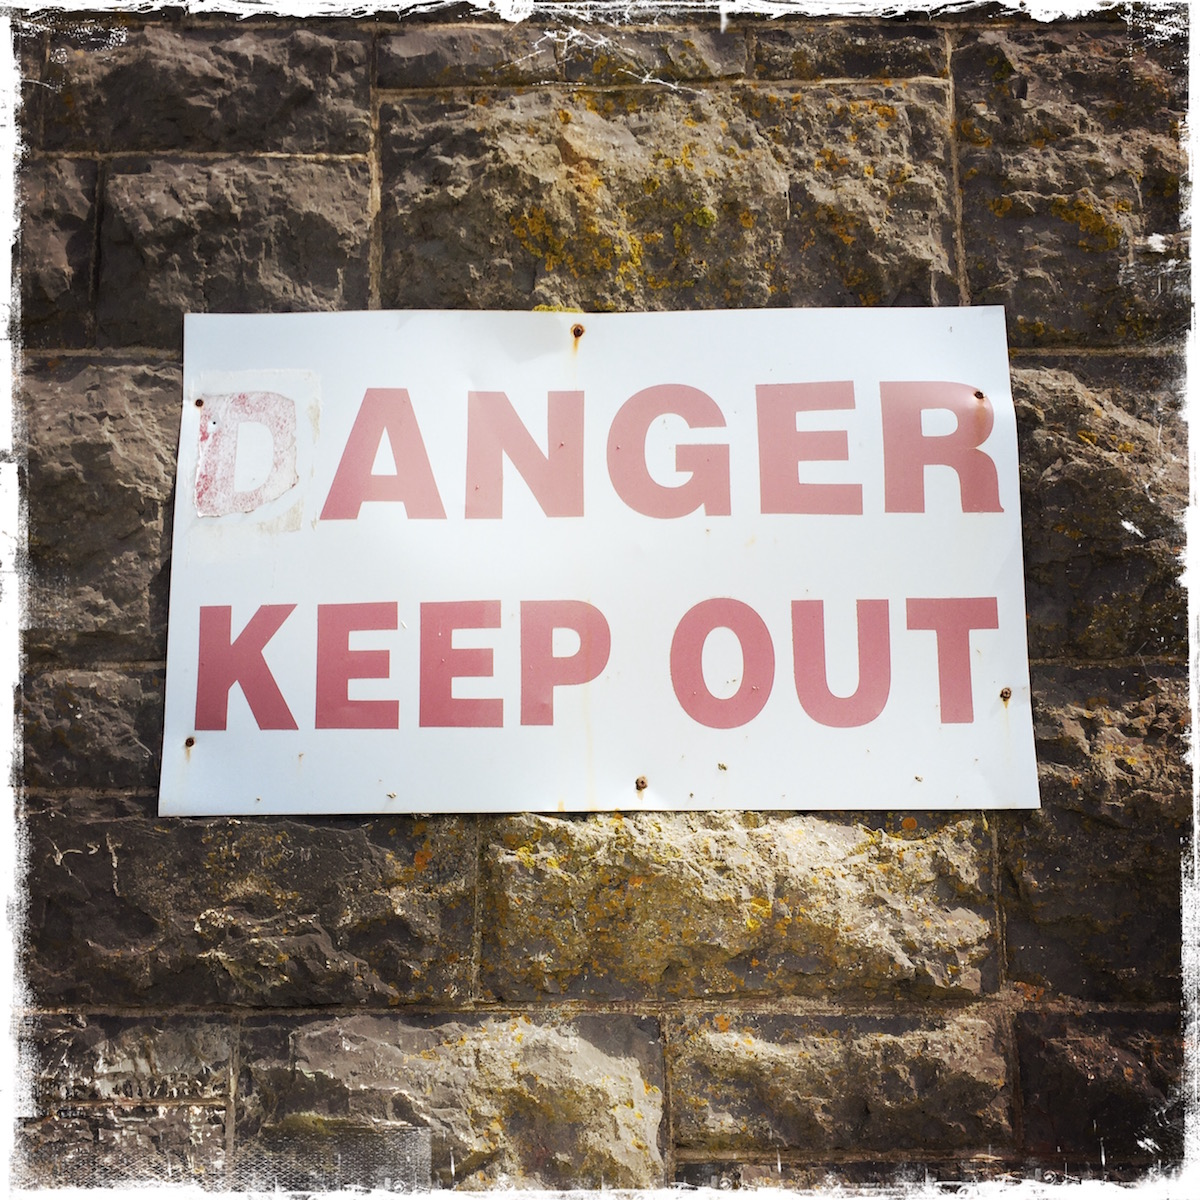 (D)anger Keep Out sign on Inis Mor in the Aran Islands, Ireland. Photo by Barbara Sinclair